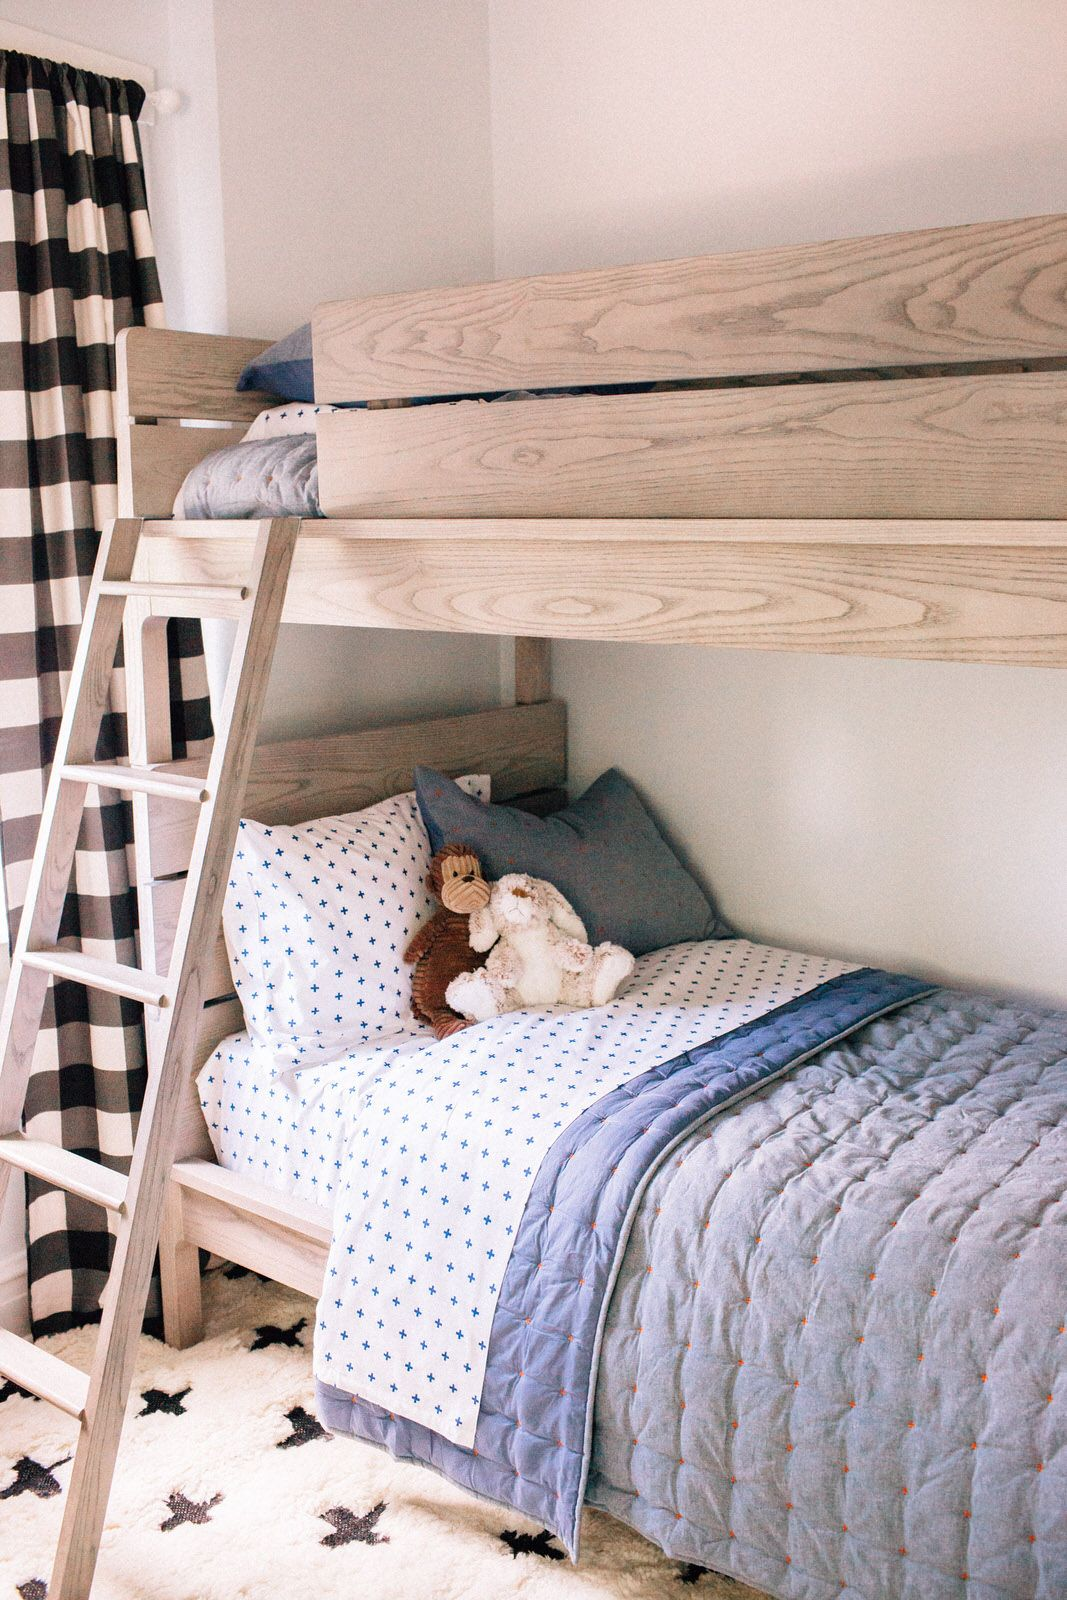 Kids Grey Twin Bunk Bed Reviews Crate And Barrel Bunk Beds For Boys Room Rustic Kids Rooms Bunk Bed Rooms